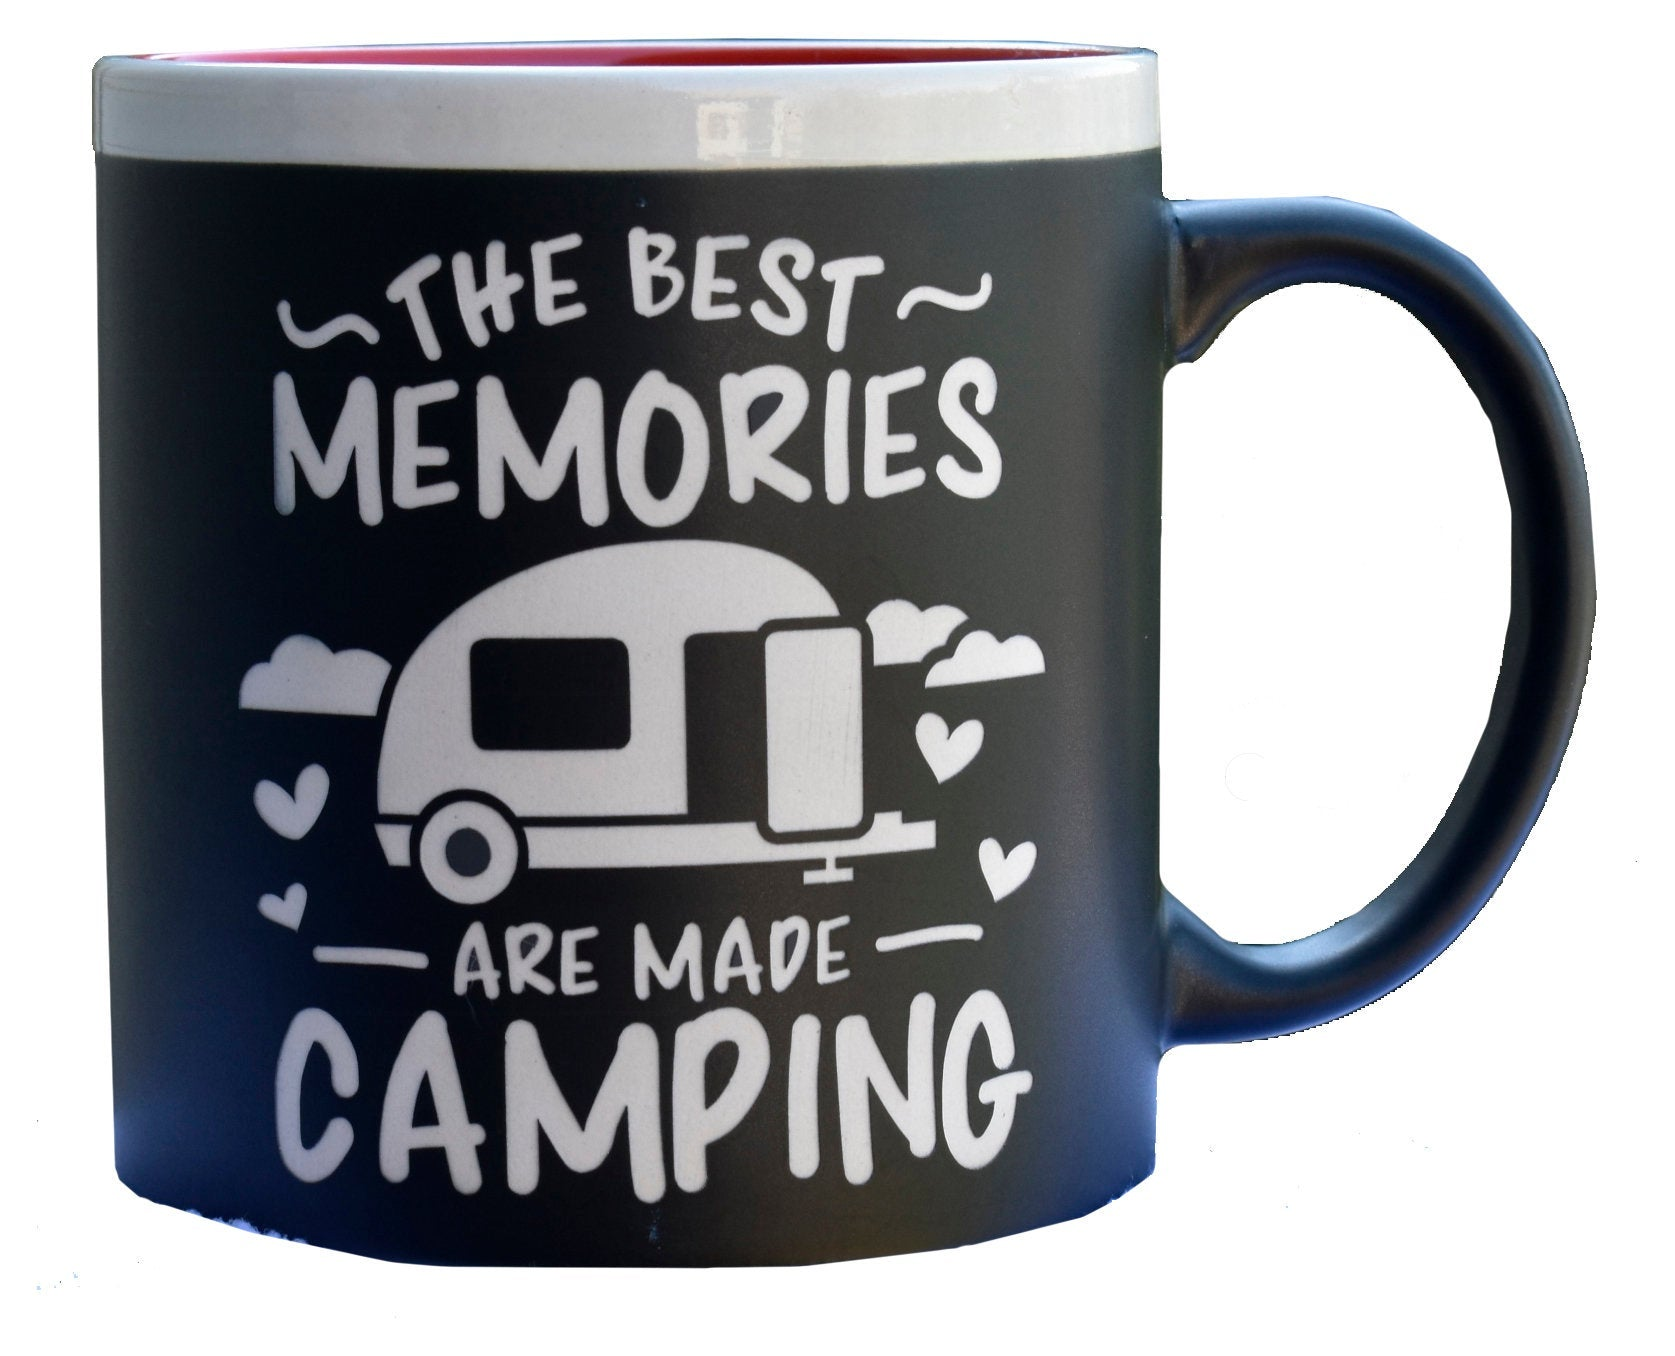 Jumbo Best Memories Camping Coffee Mug Outdoor Theme Camper Gift